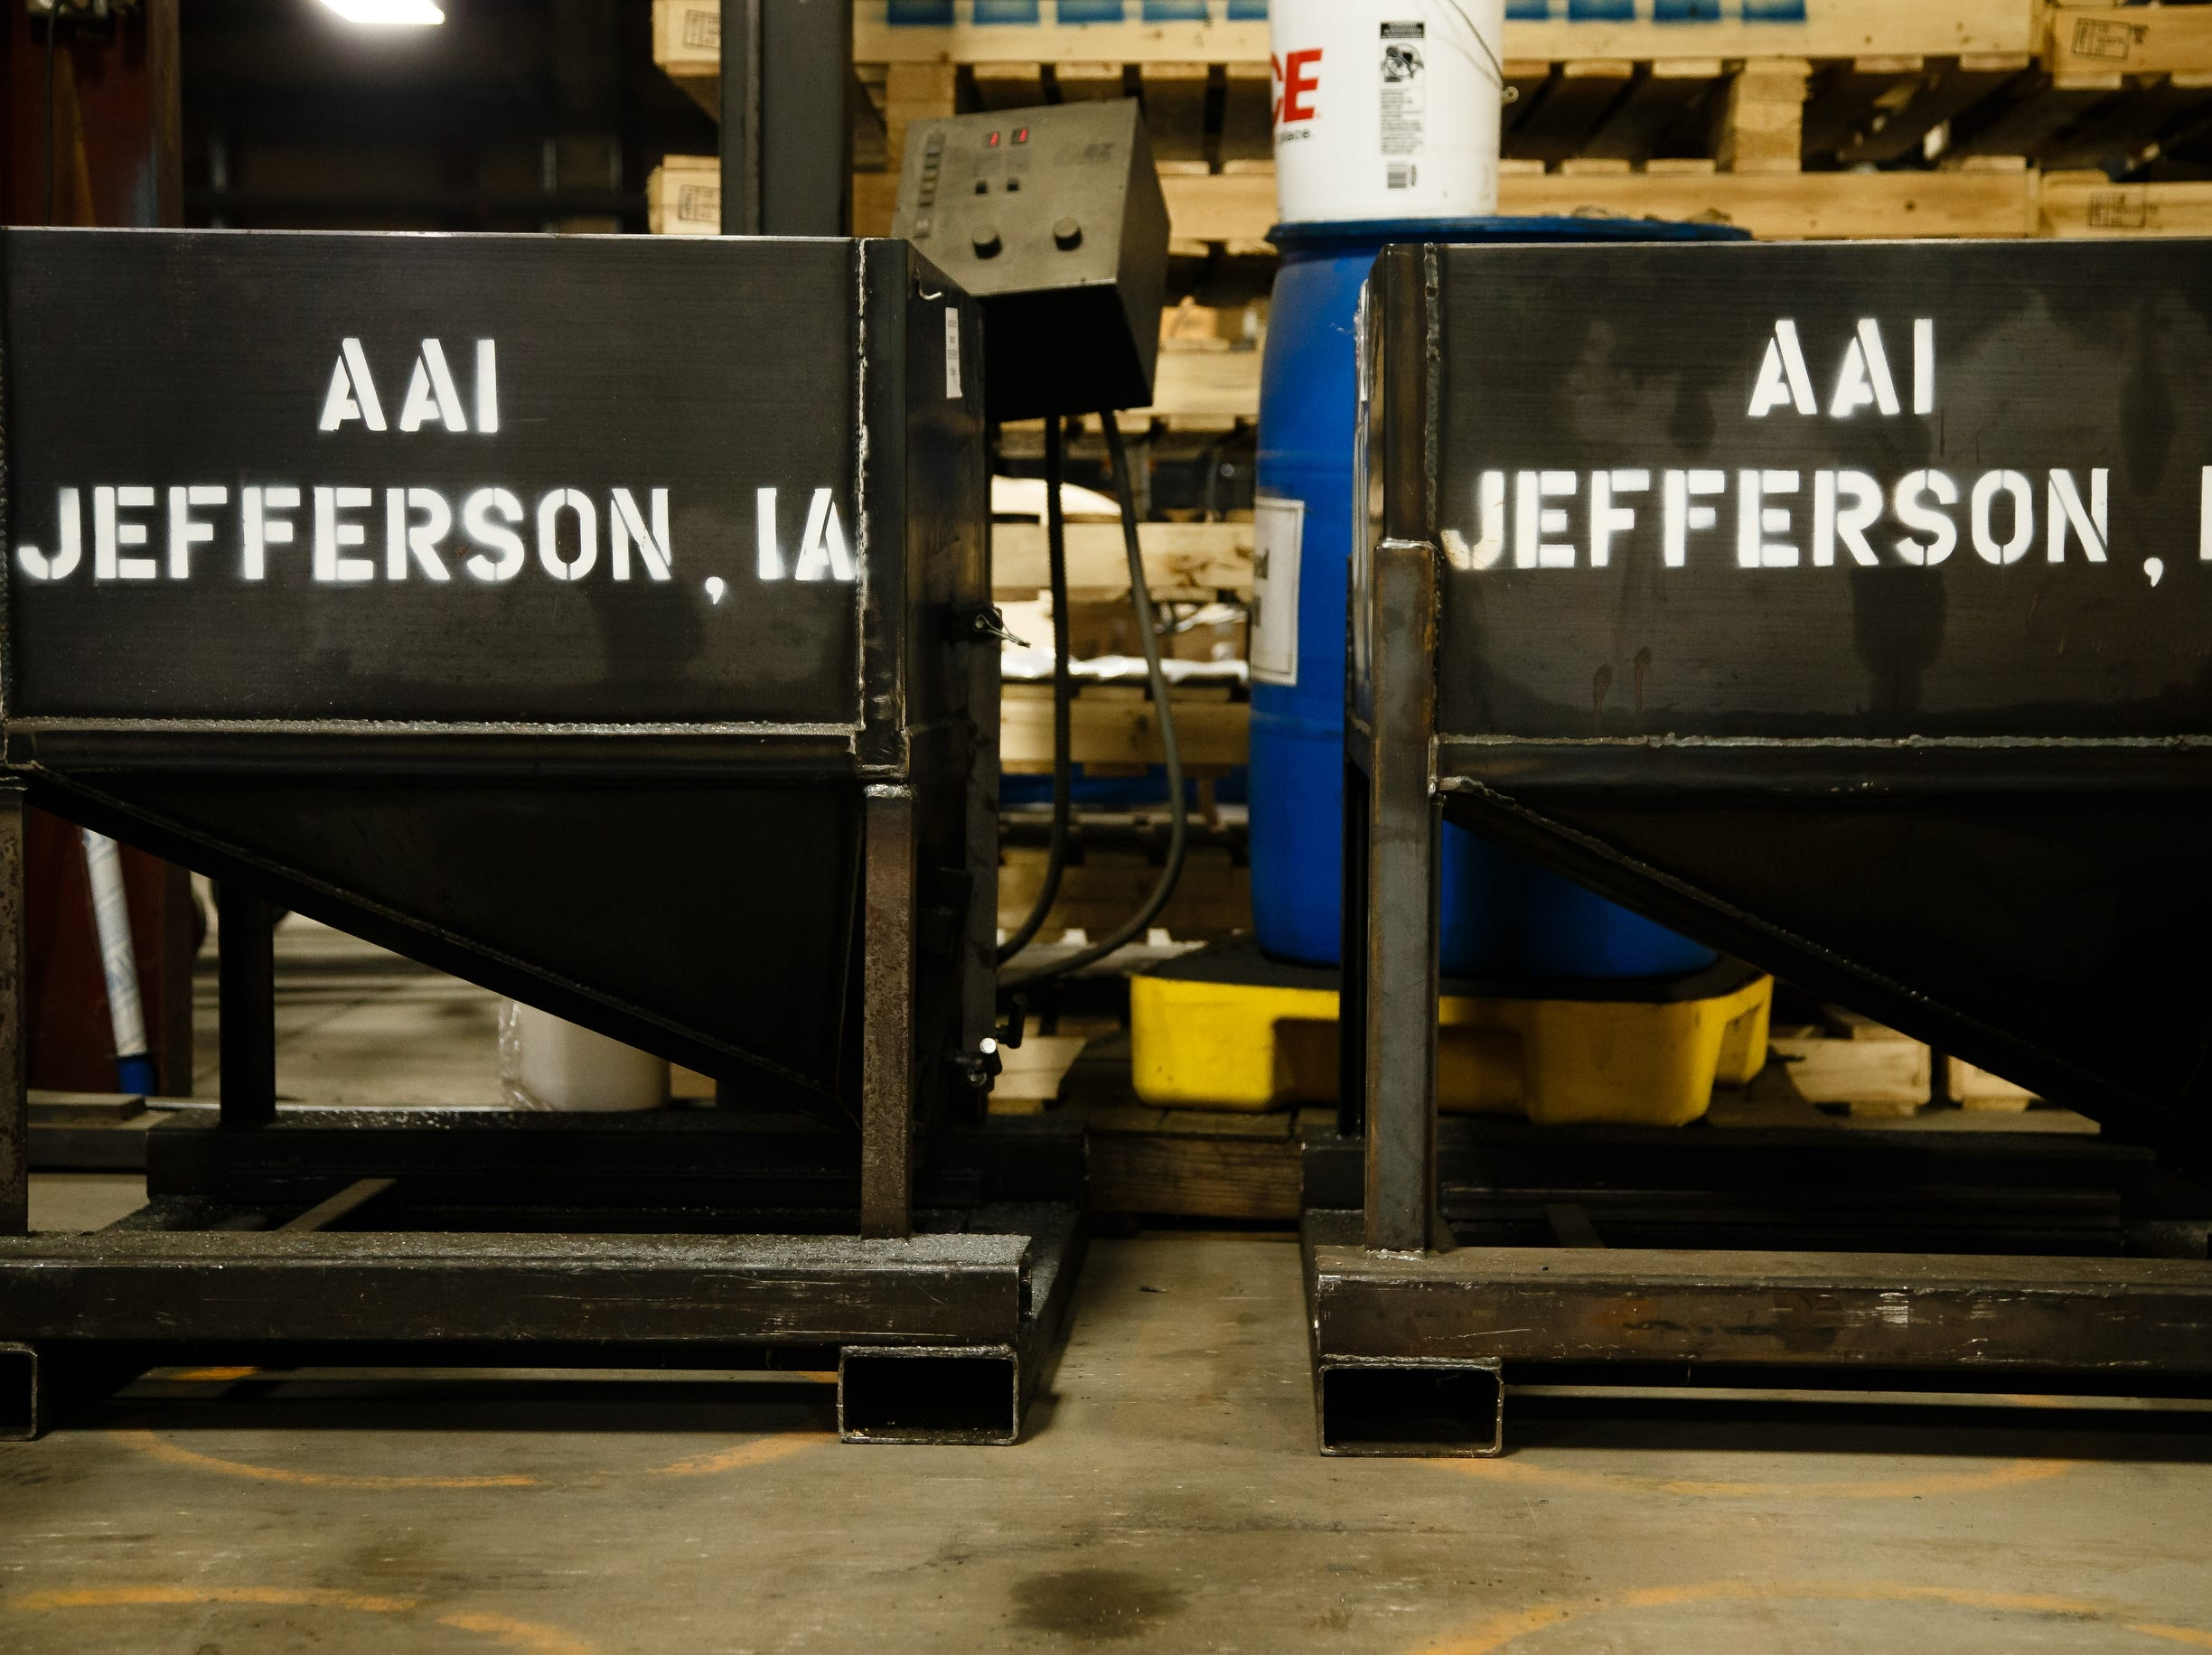 Hoppers sit ready for work at AAI's facility in Jefferson on Wednesday, March 13, 2019. AAI is the official supplier of basketball back stops for NBA, NCAA, WNBA and the NBA G-League. They make all their products, as well as a full line of gymnastics and tumbling equipment out of this factory in Jefferson where they were founded.